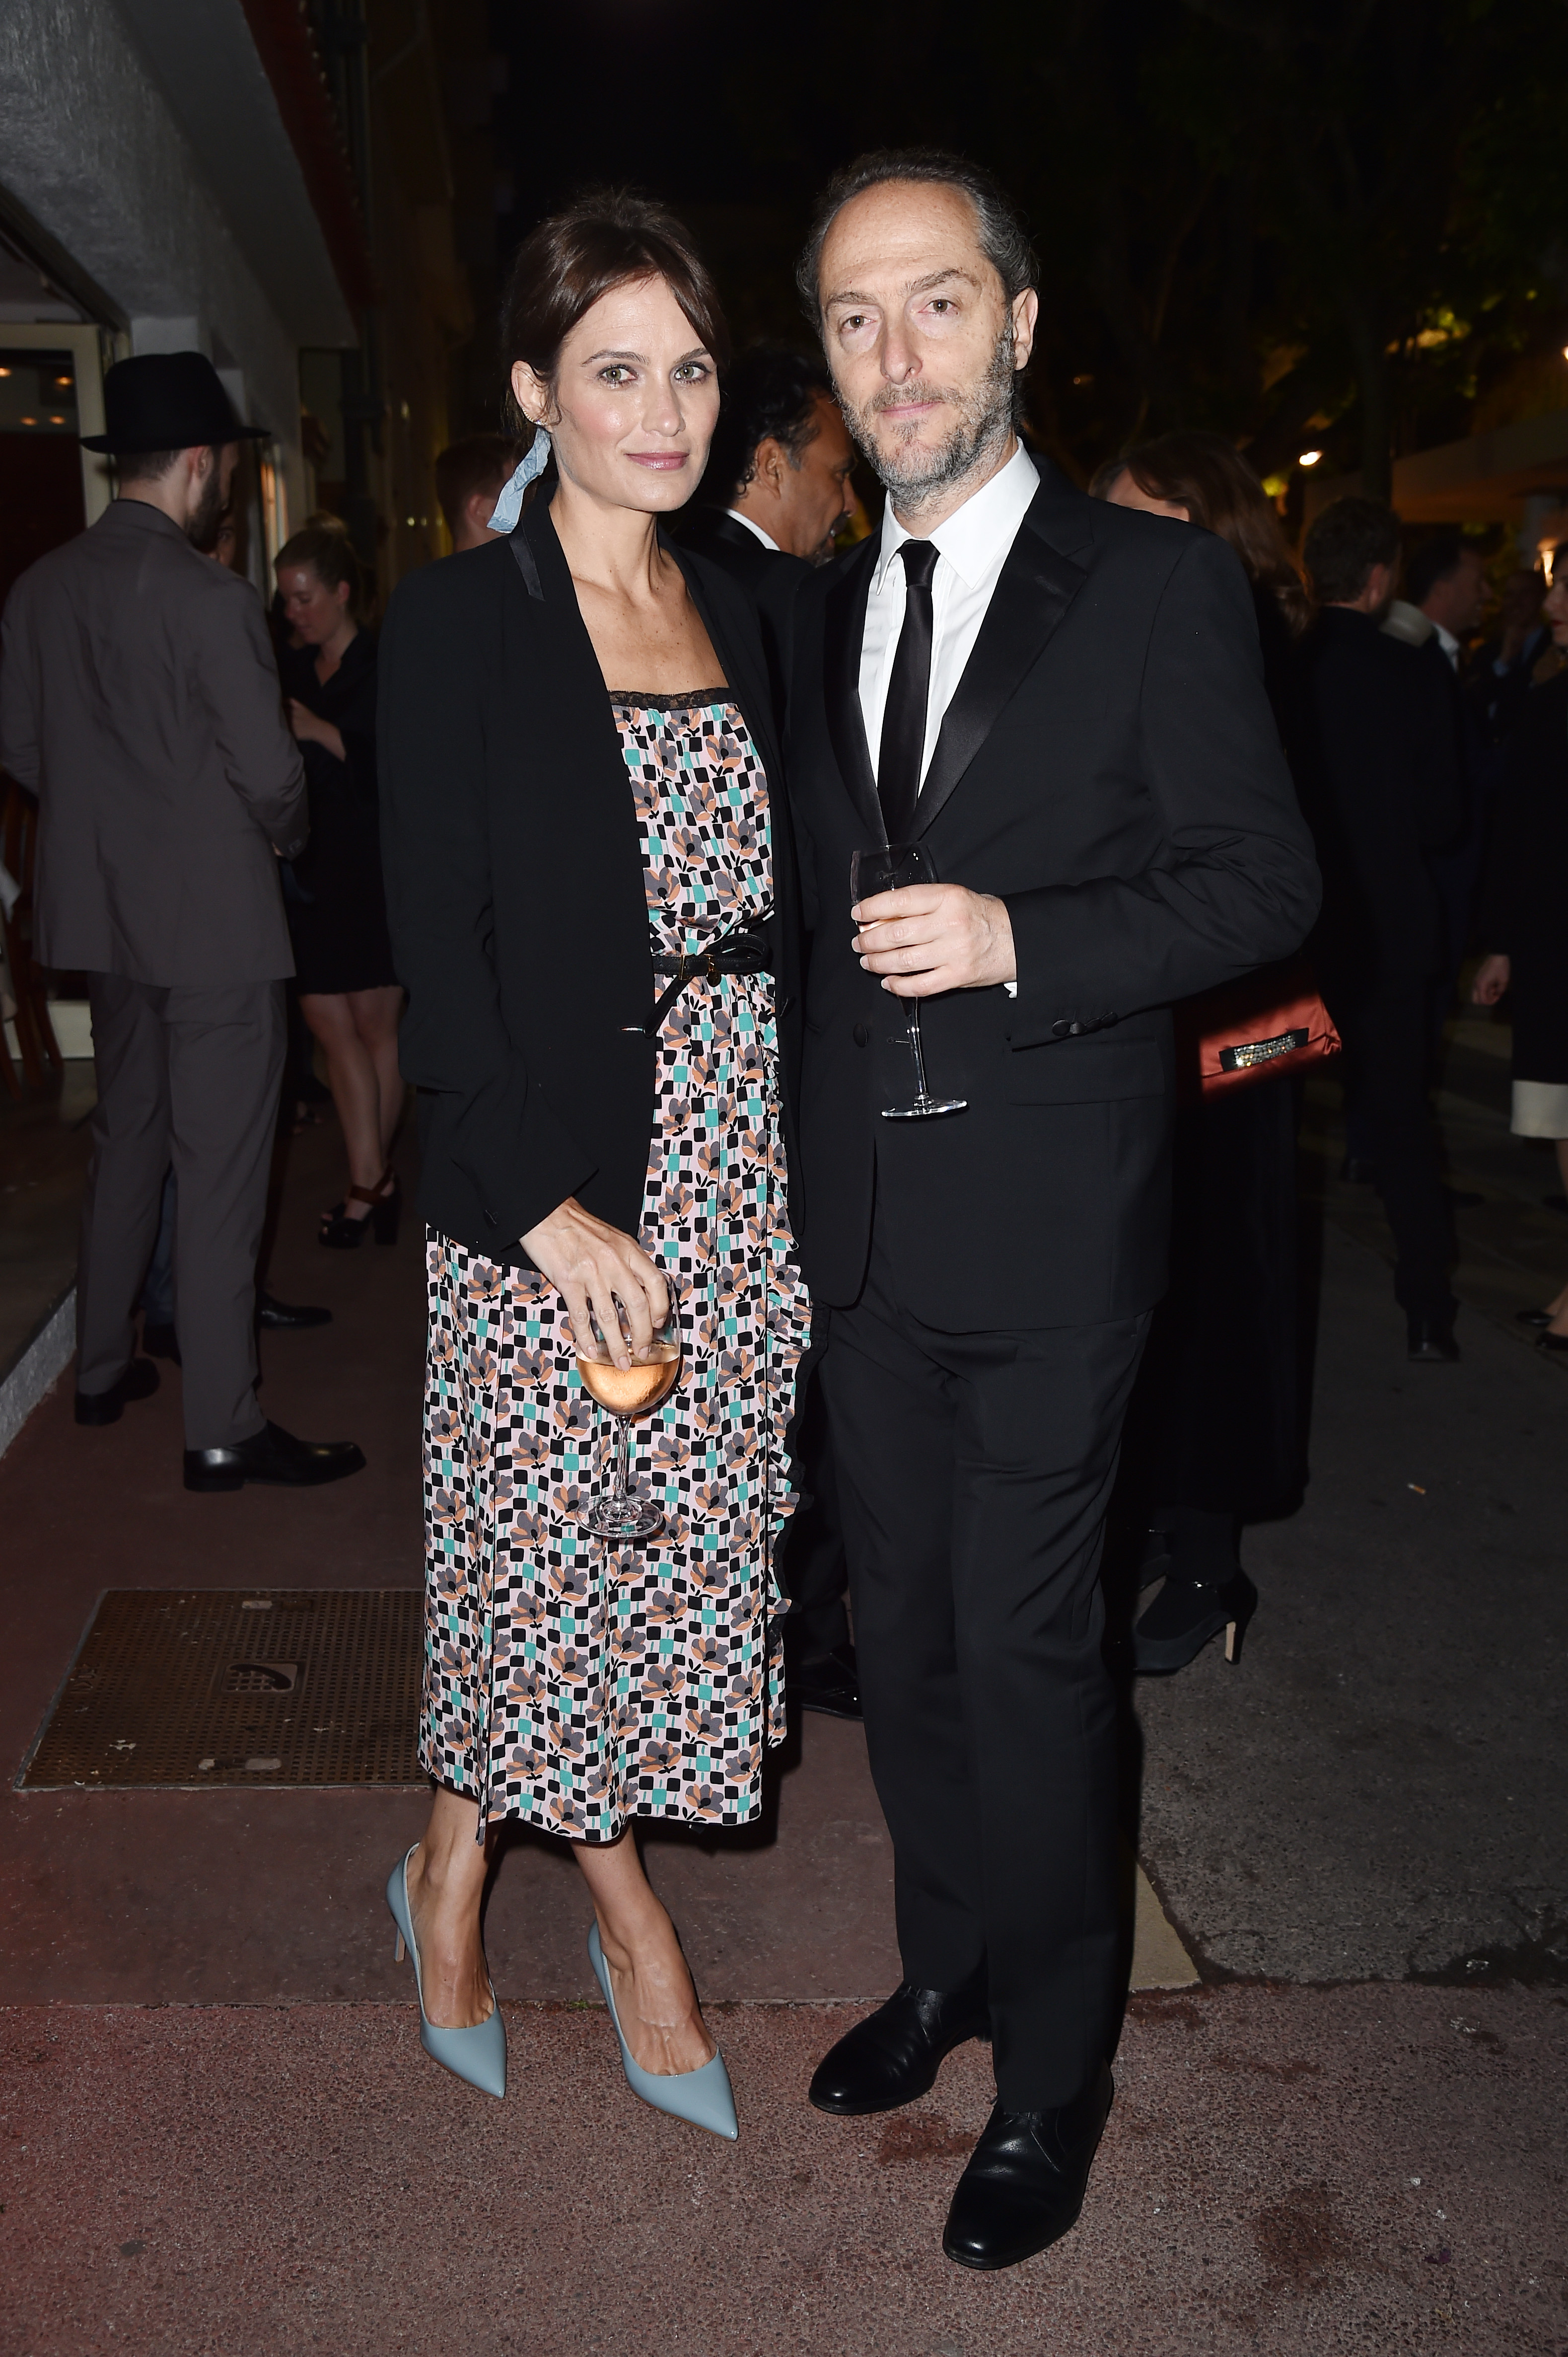 CANNES, FRANCE - MAY 22:  Sheherazade Goldsmith and Emmanuel Lubezki attend Prada Private Dinner during the 70th annual Cannes Film Festival at Restaurant Fred L'Ecailler on May 22, 2017 in Cannes, France.  (Photo by Jacopo Raule/Getty Images for Prada)